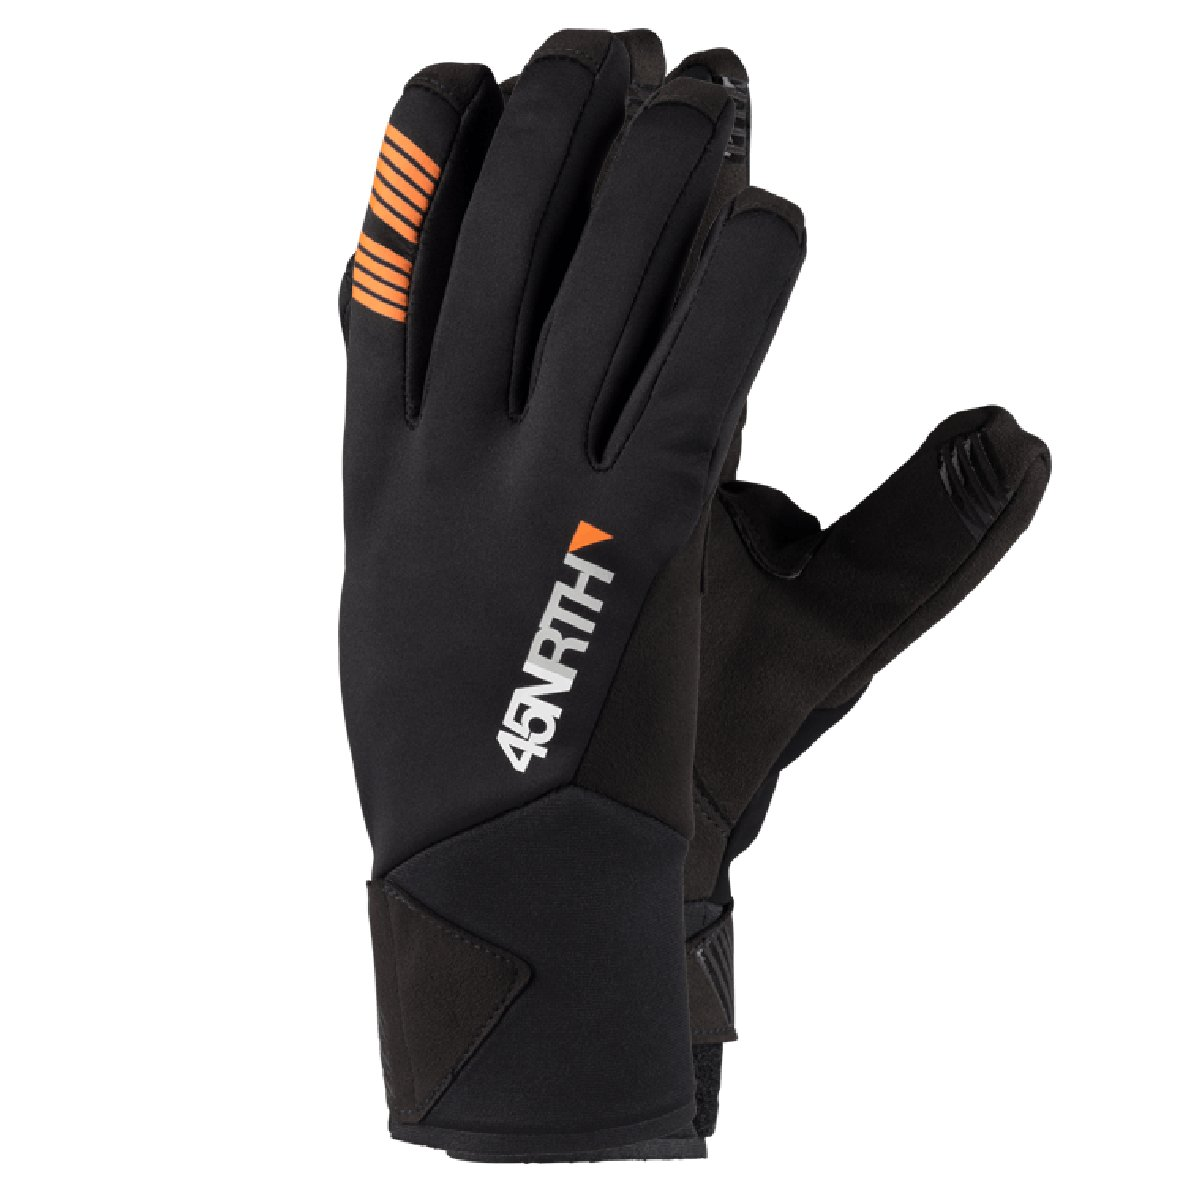 GANTS 45NRTH NOKKEN ORANGE NOIR